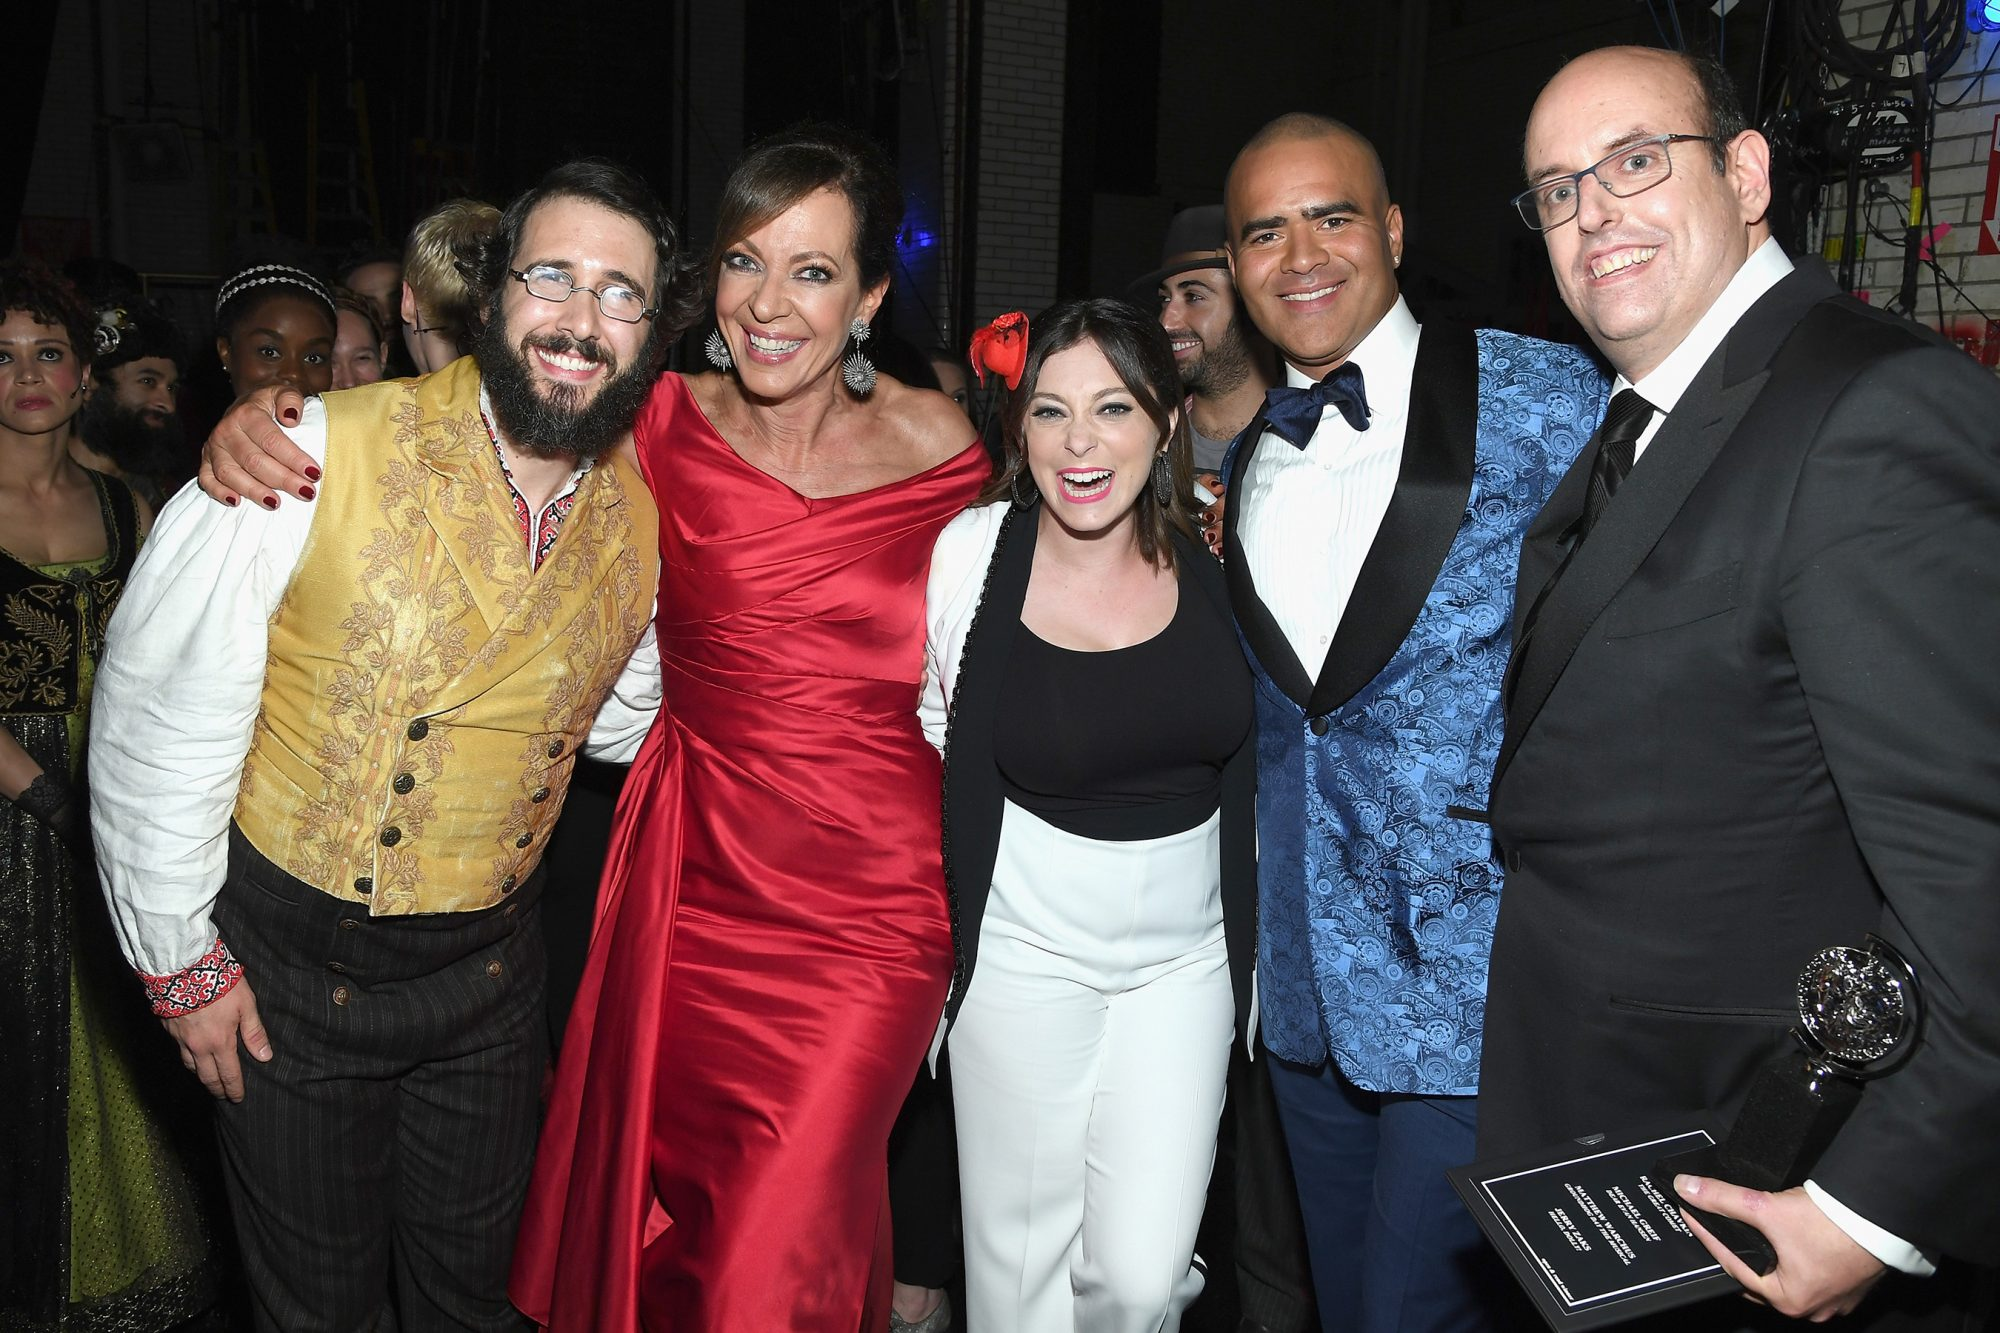 With Josh Groban, Allison Janney, Christopher Jackson and Christopher Ashley